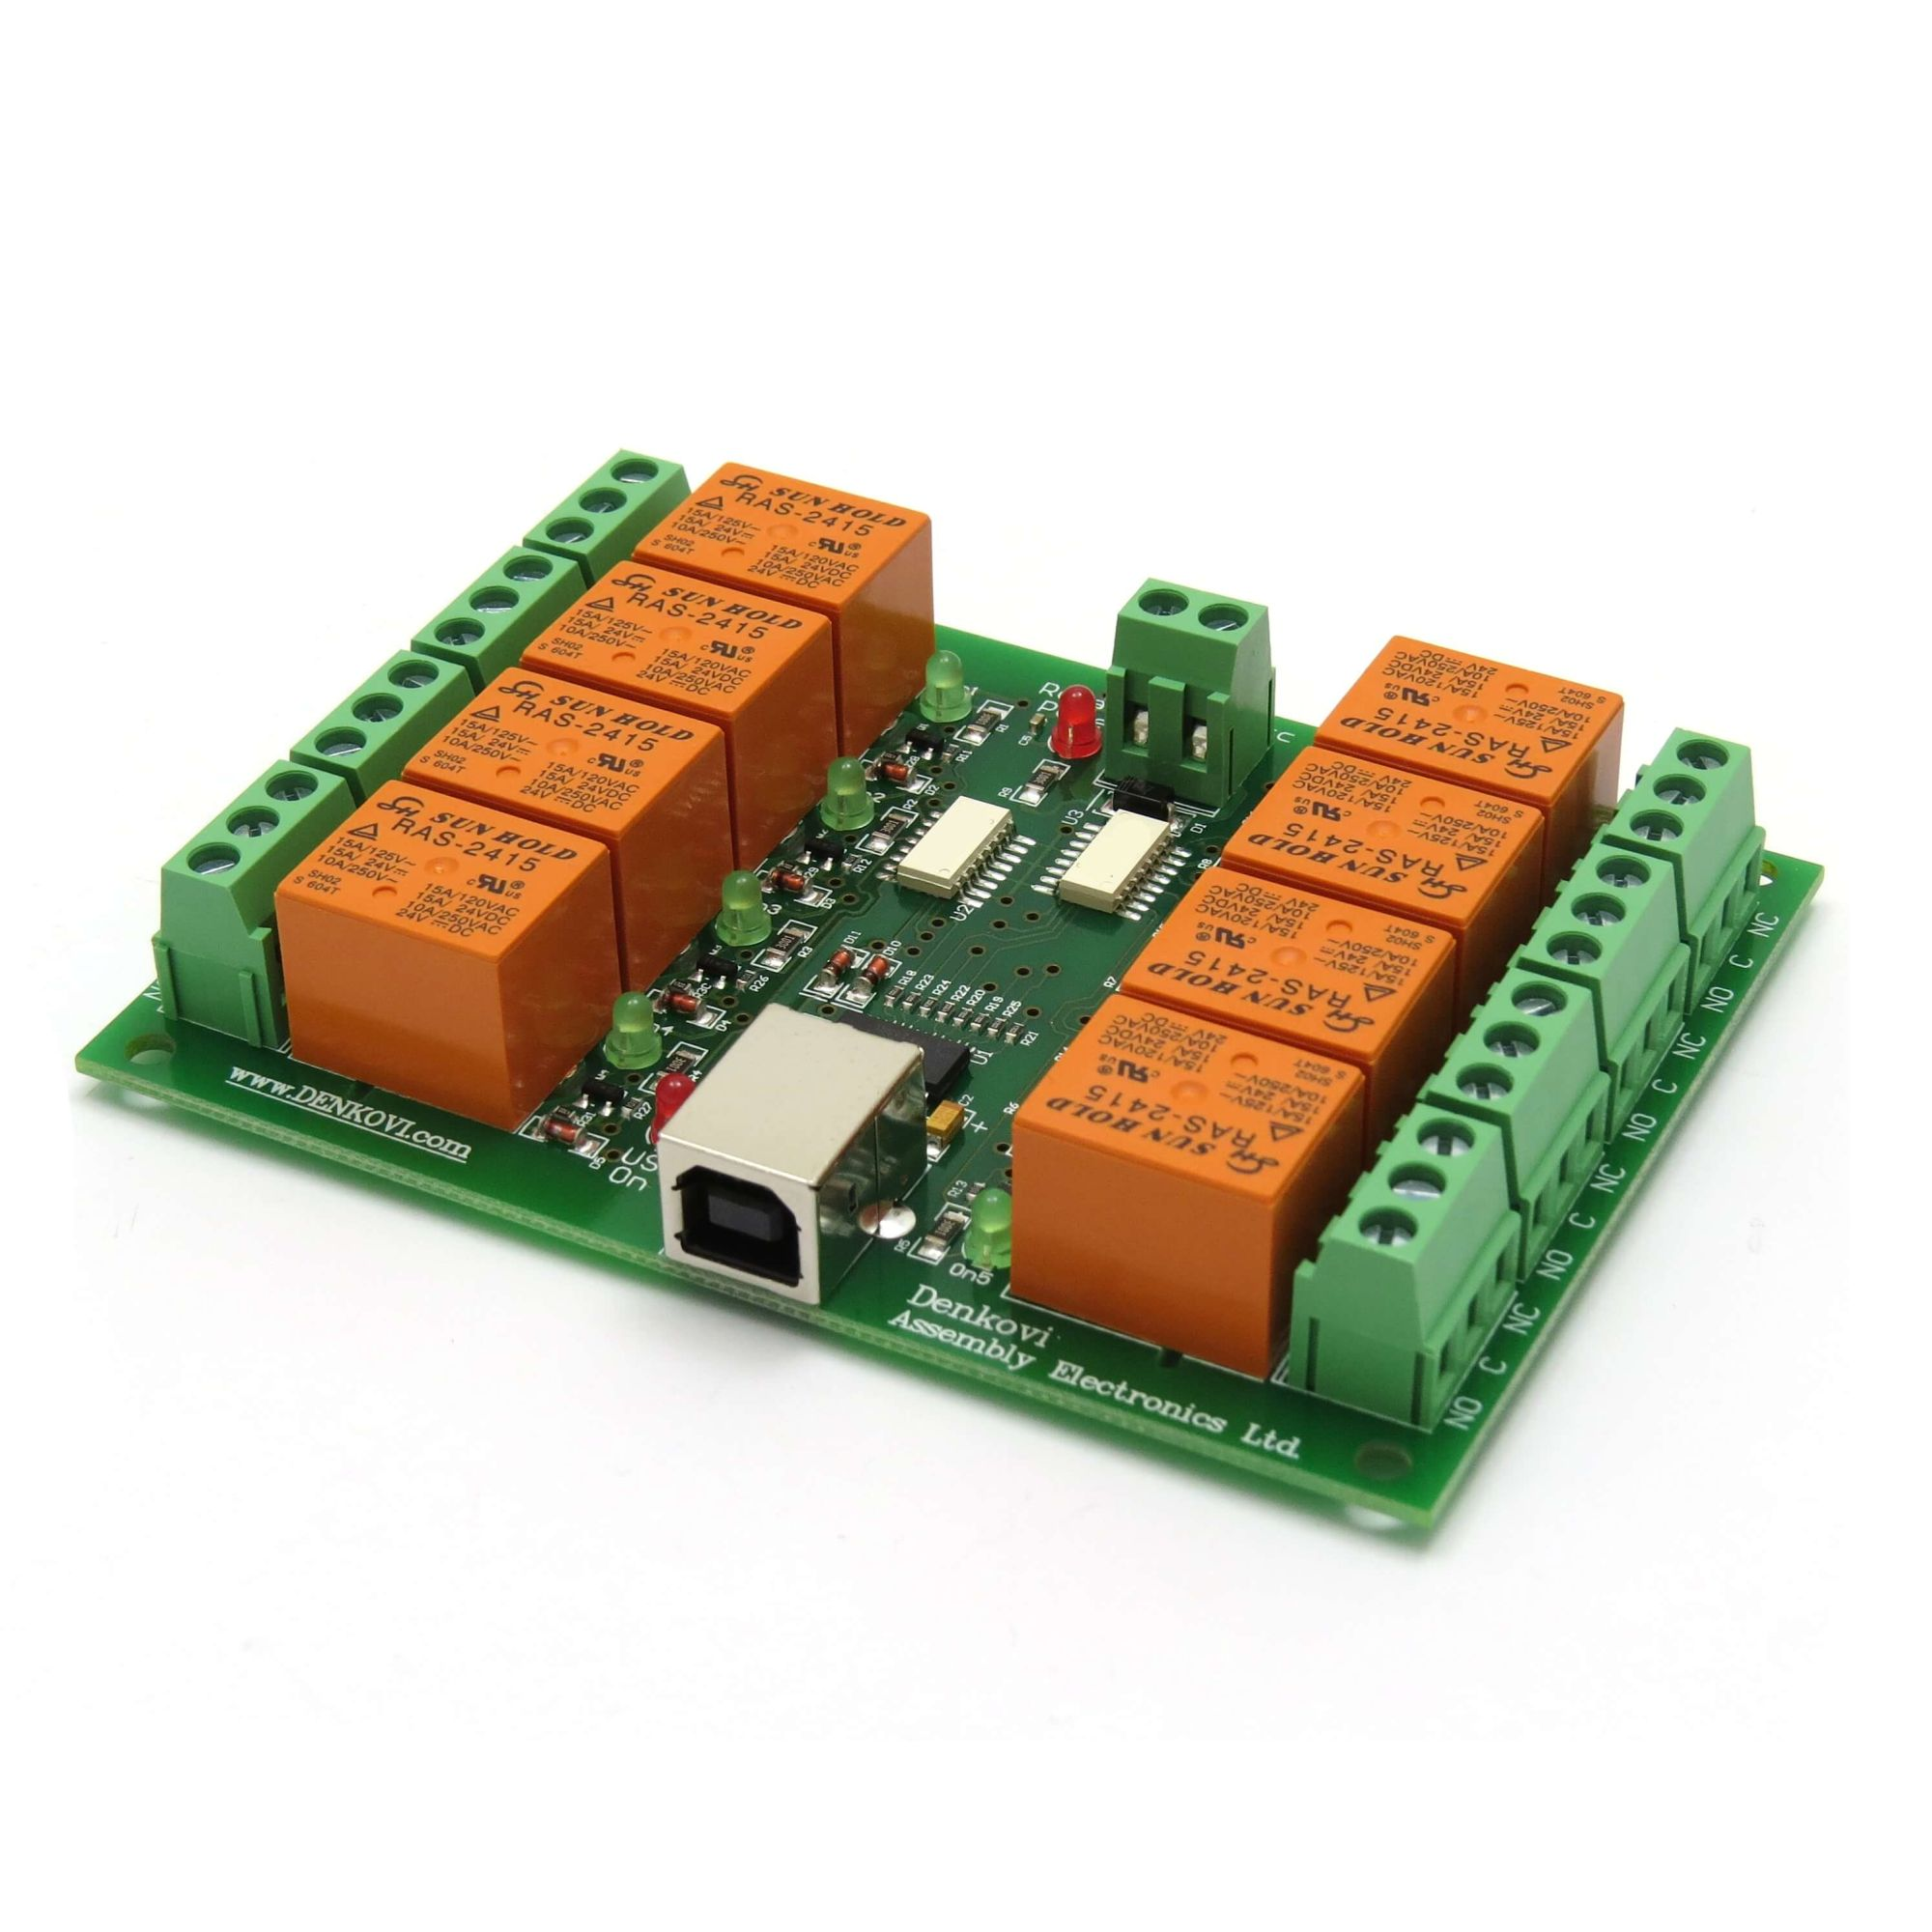 Details about USB 8 Channel Relay Board - Automation, Robotics - 24V